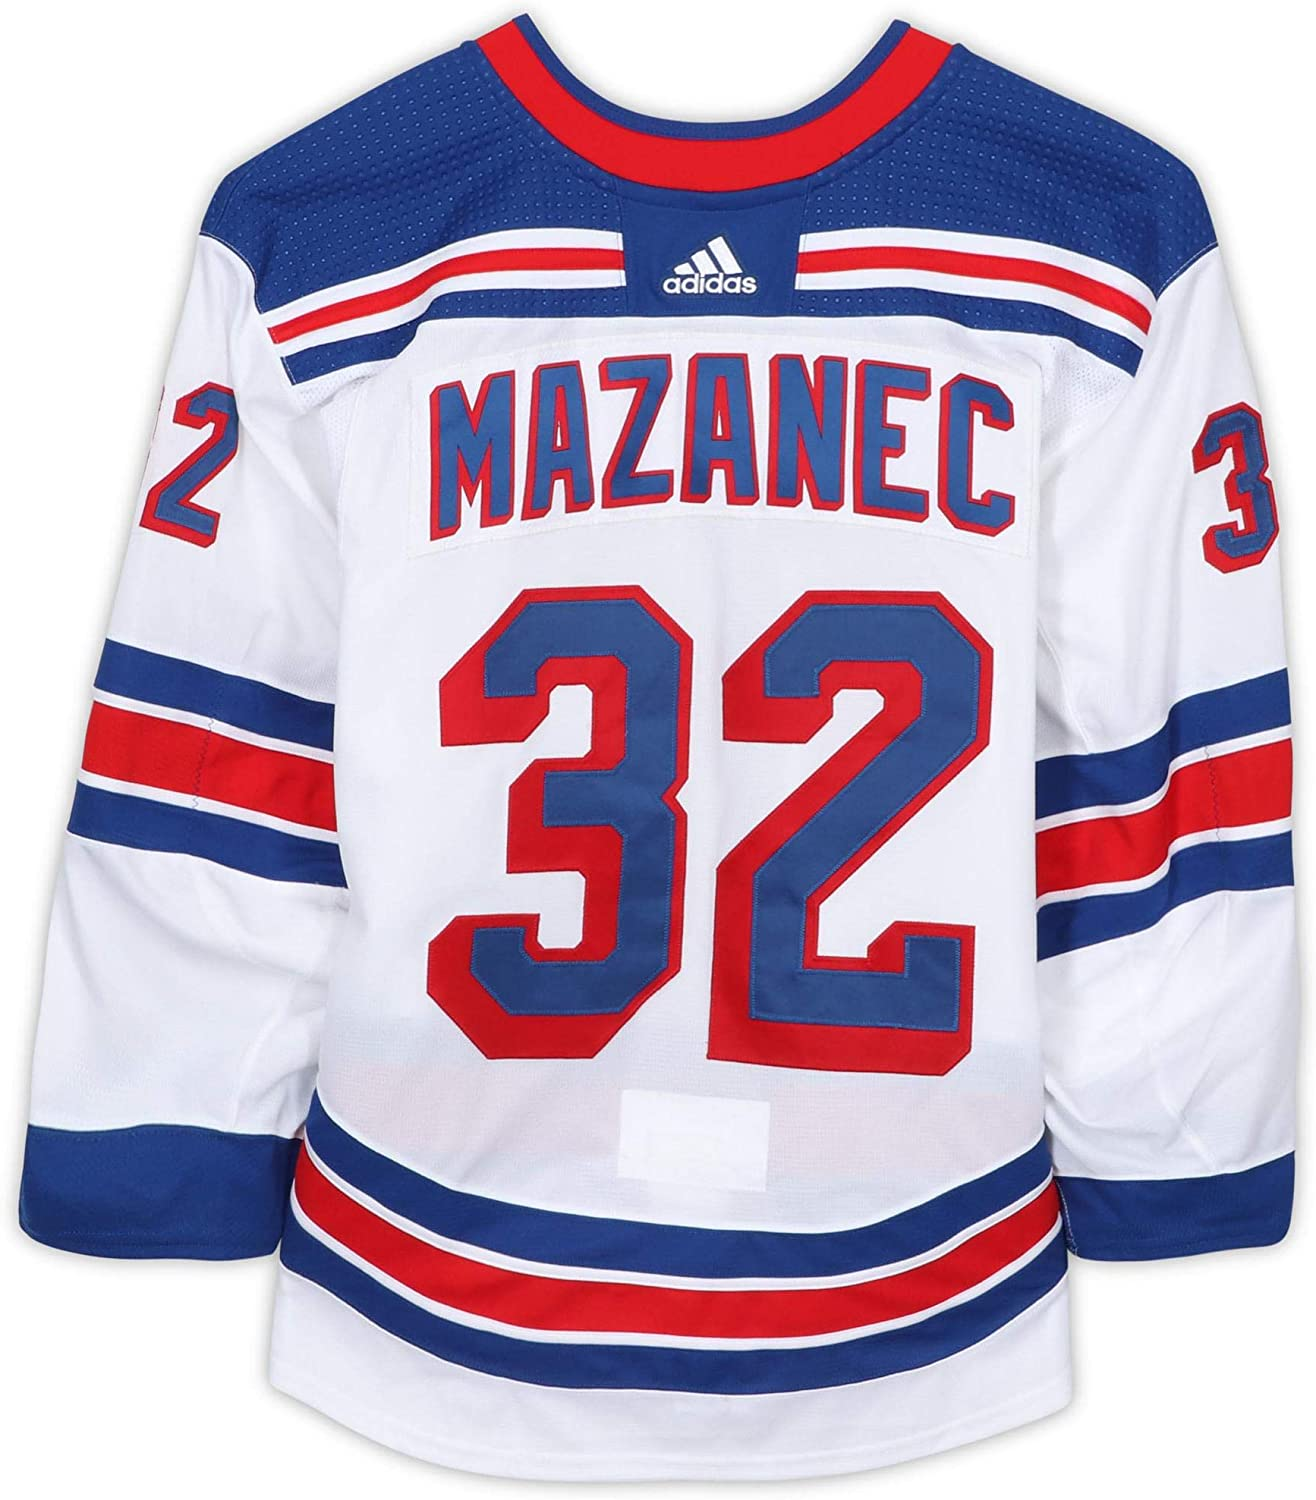 Marek Mazanec New York Rangers Game-Used #32 White Jersey from the 2018-19 NHL Preseason - Size 58G - Game Used NHL Jerseys